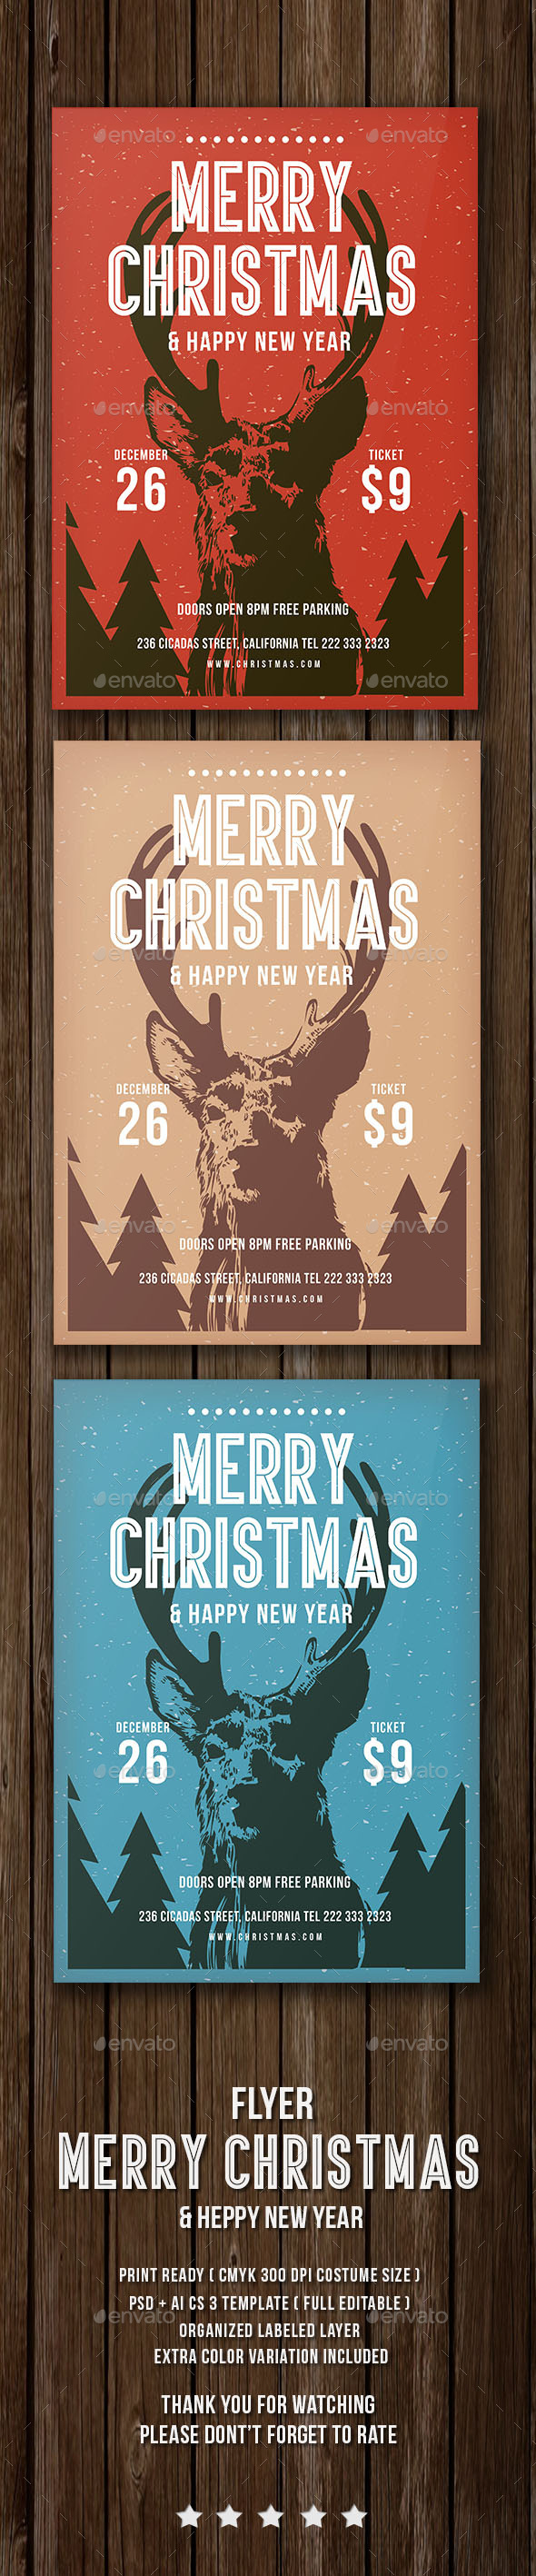 Christmas & Heppy New Year Flyer - Events Flyers